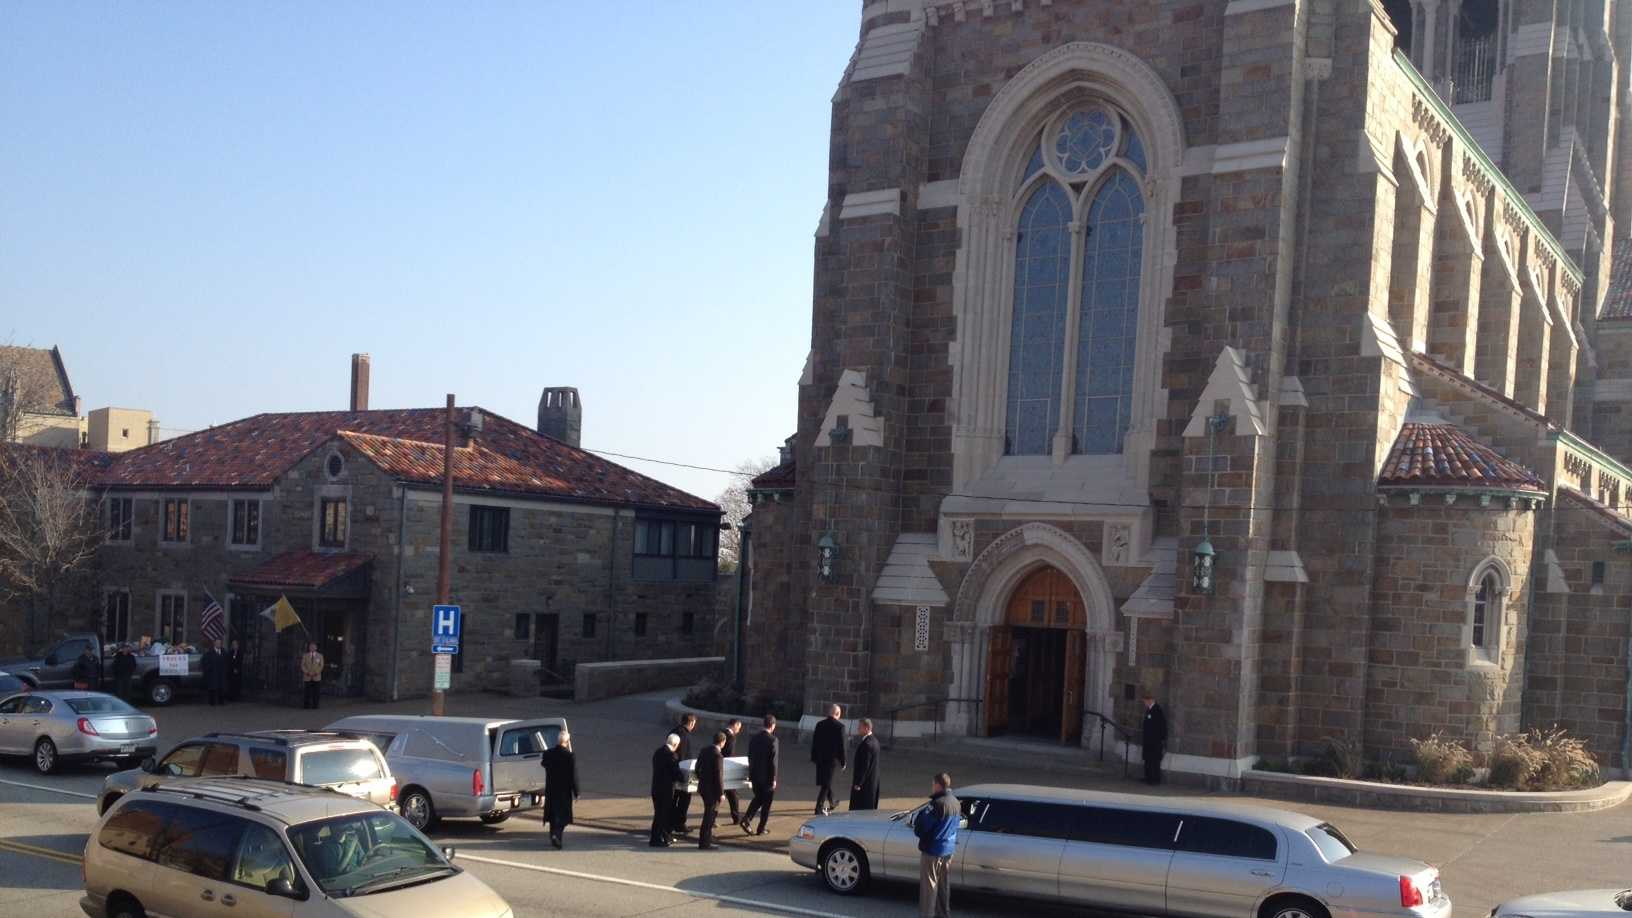 Pallbearers carried the small casket into the church.